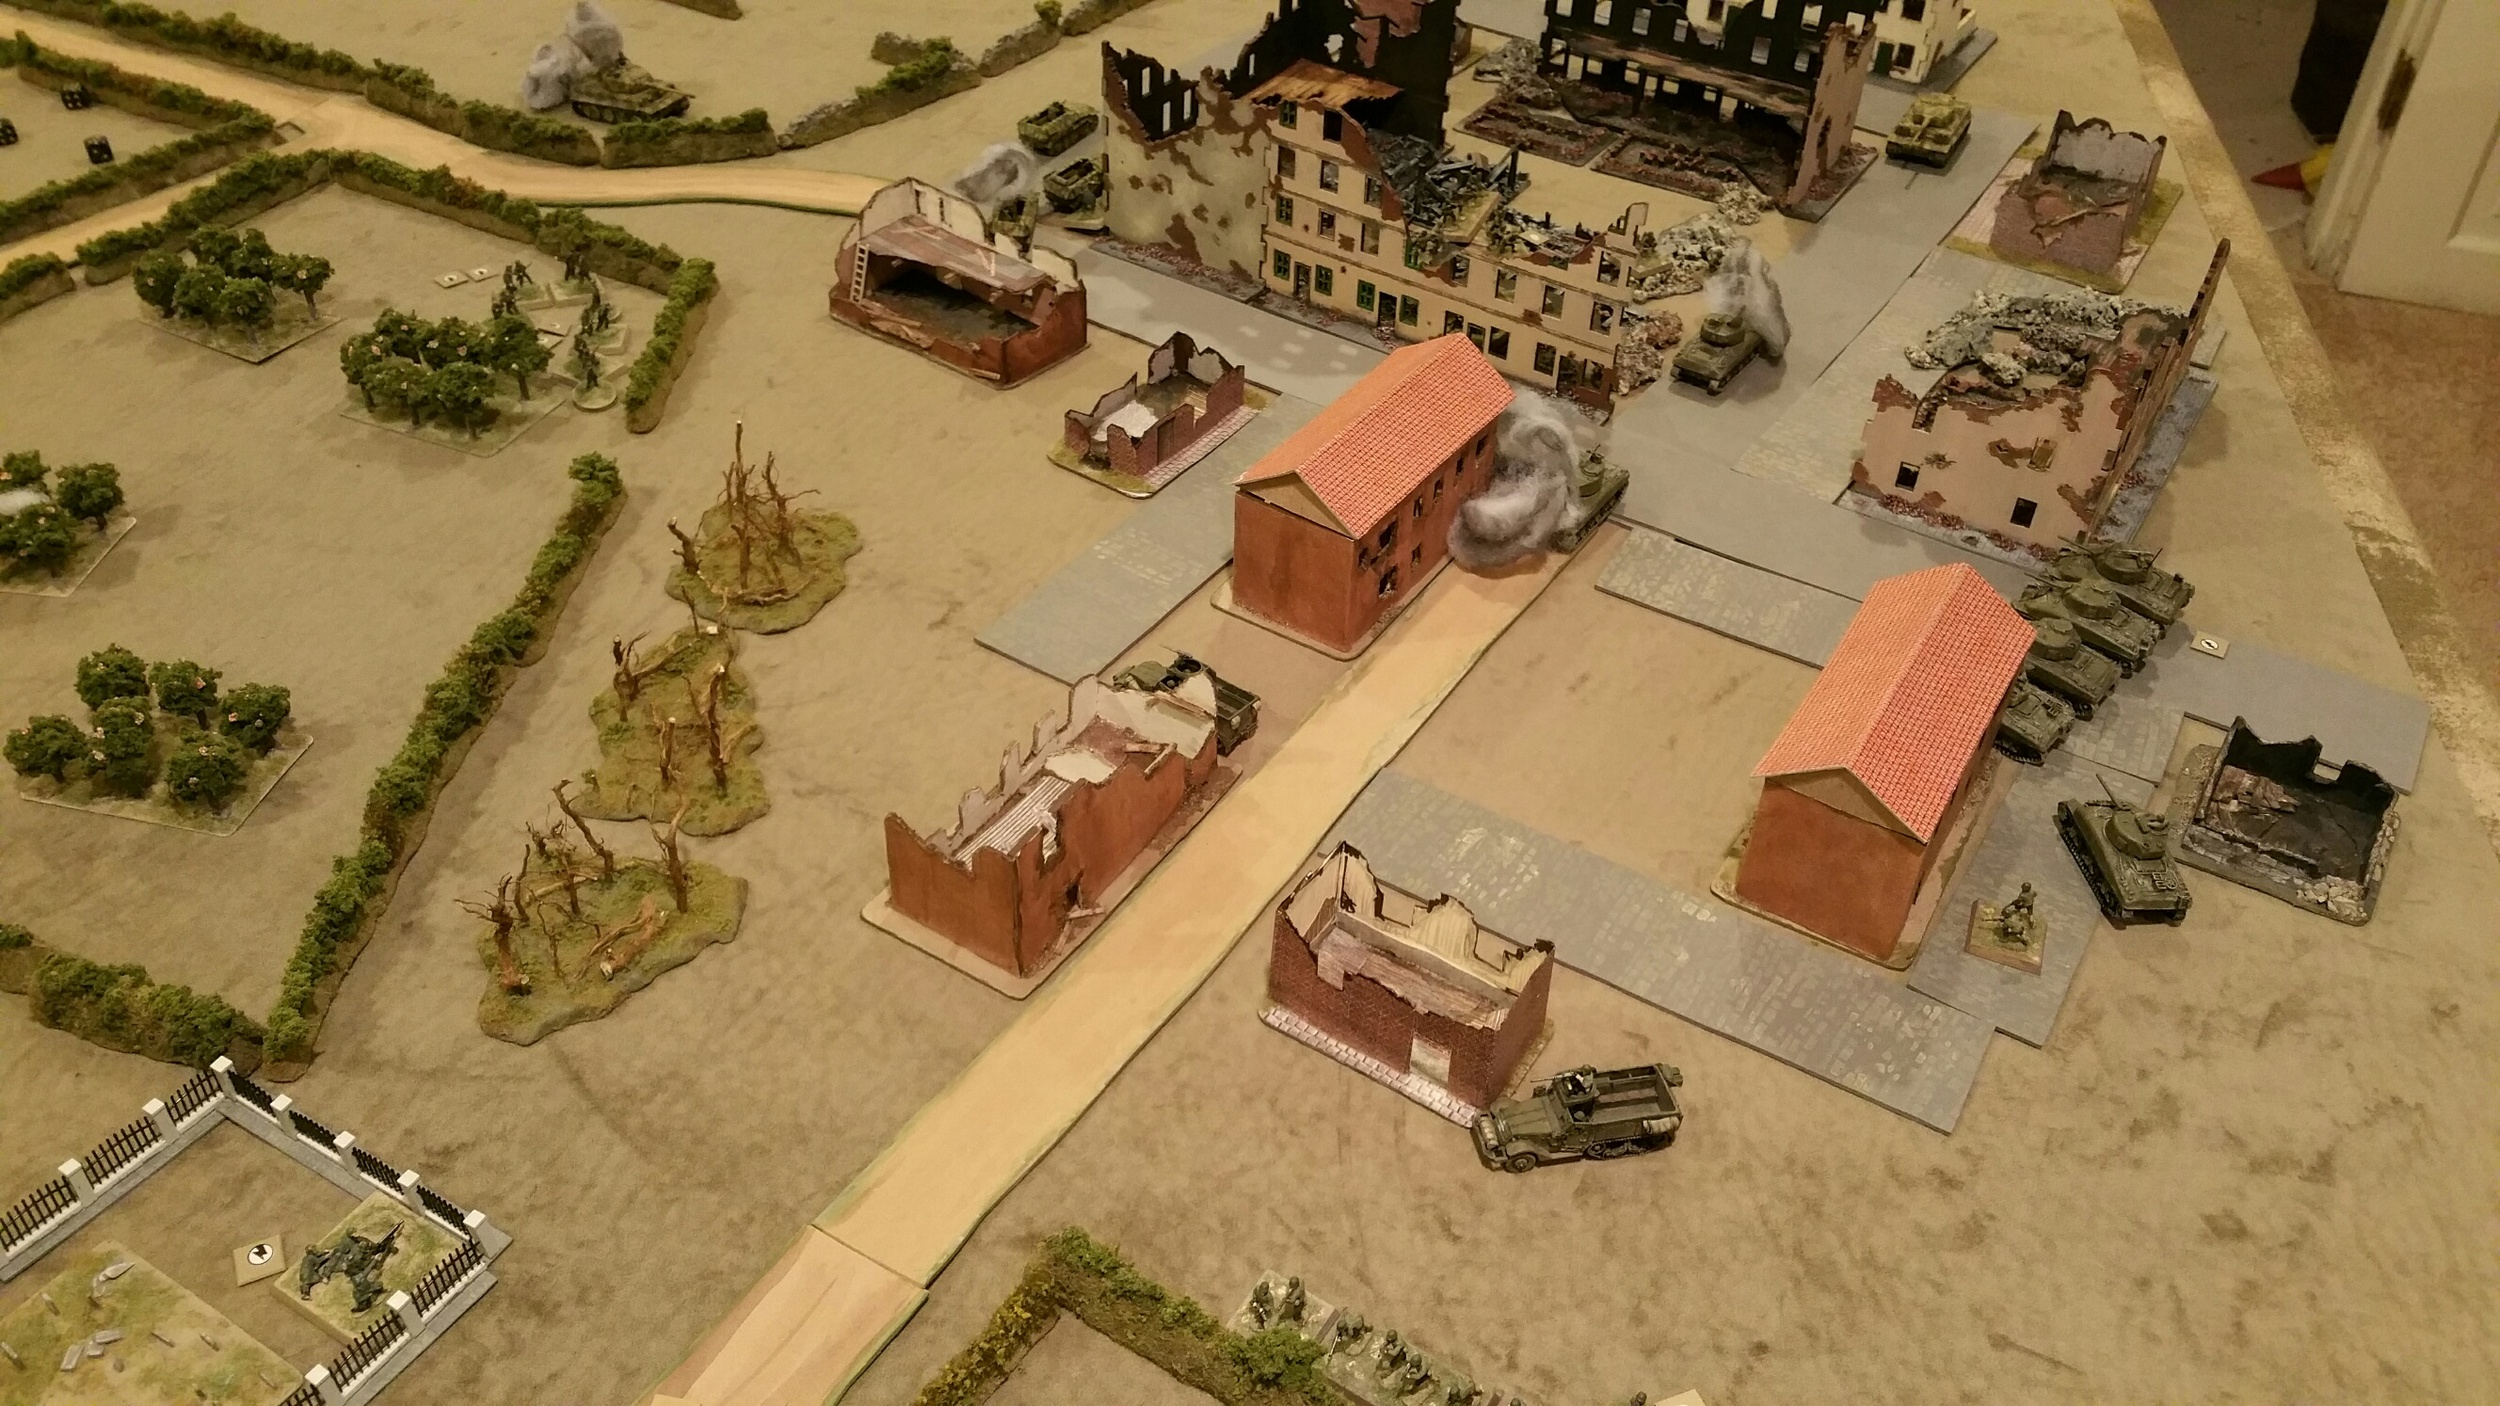 Overview of the board from the left rear of the US position.